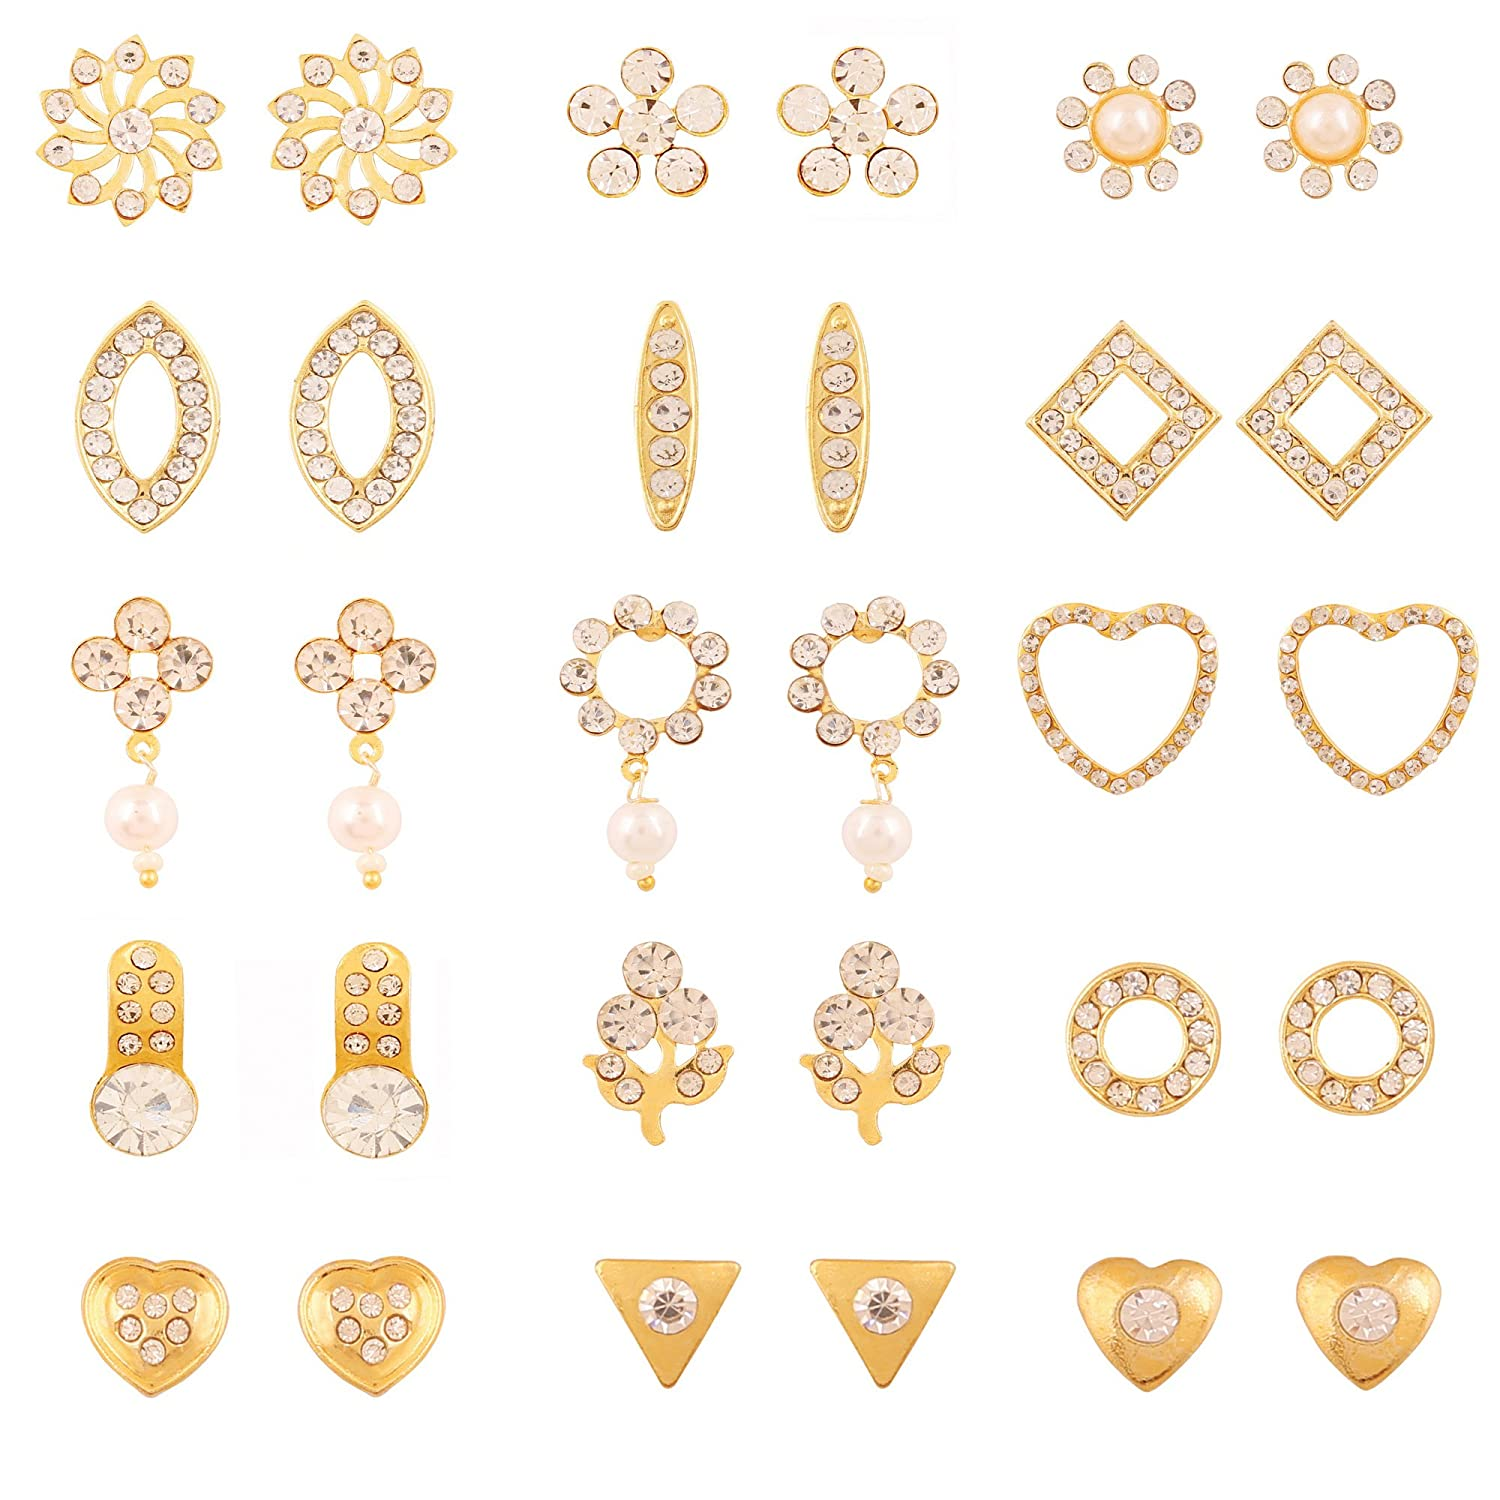 Earrings: Buy Earrings online at best prices in India - Amazon.in